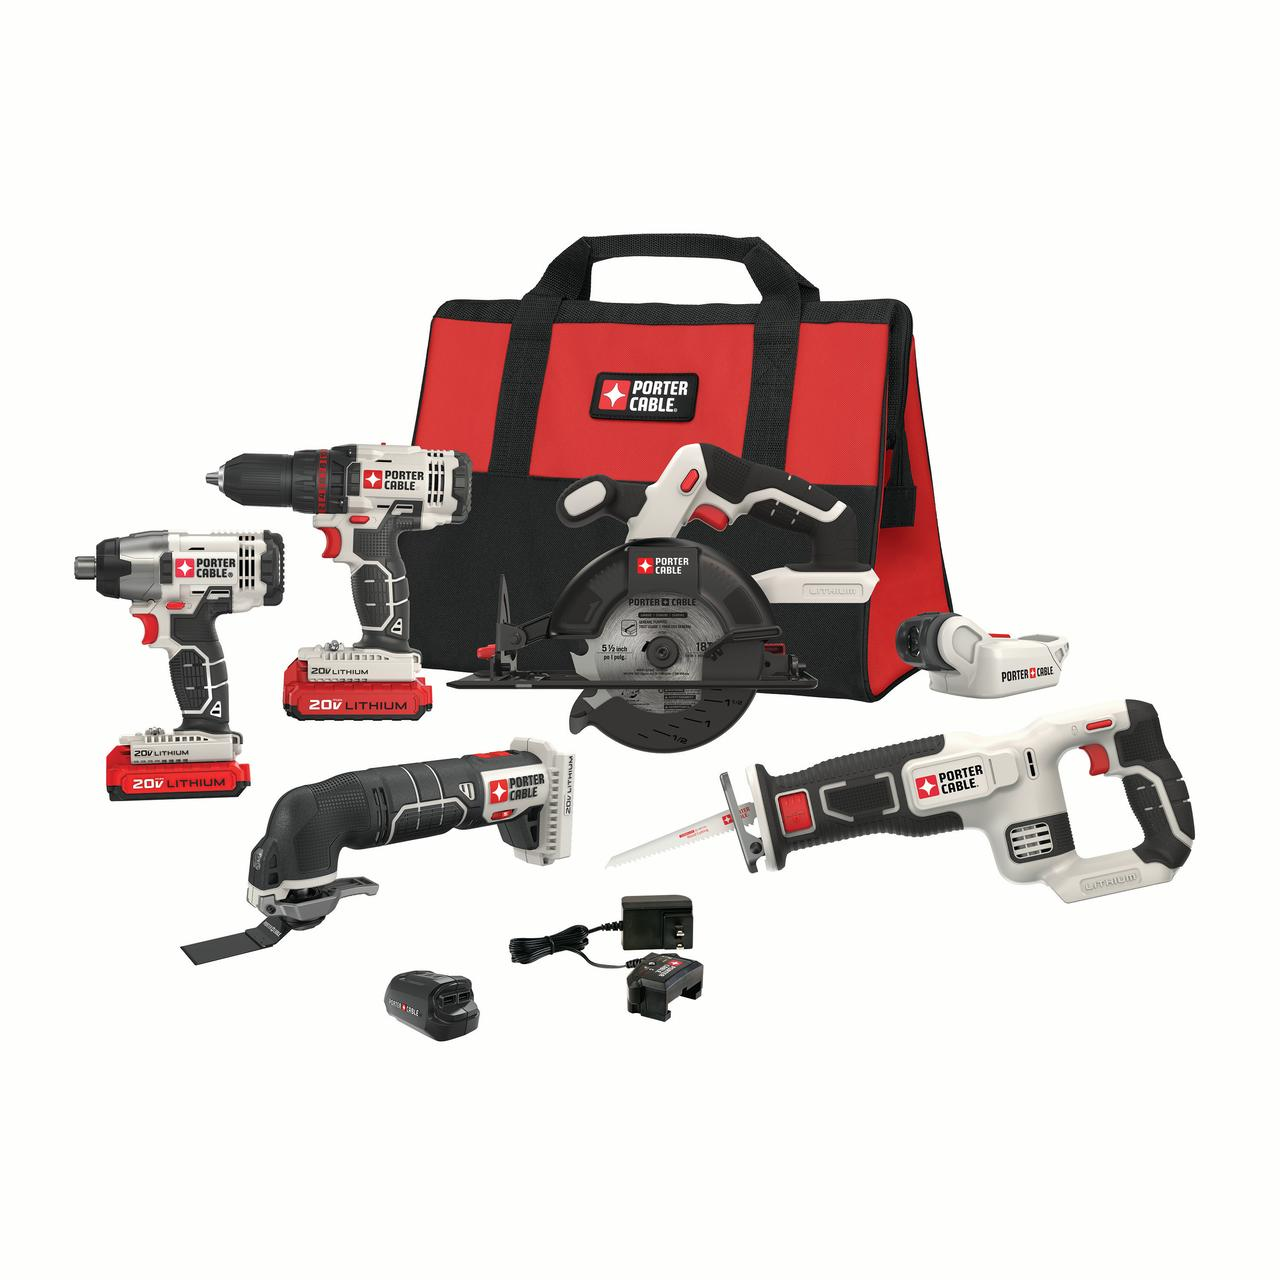 PORTER CABLE PCCK617L6 20V MAX Lithium-Ion 6 Tool Combo Kit